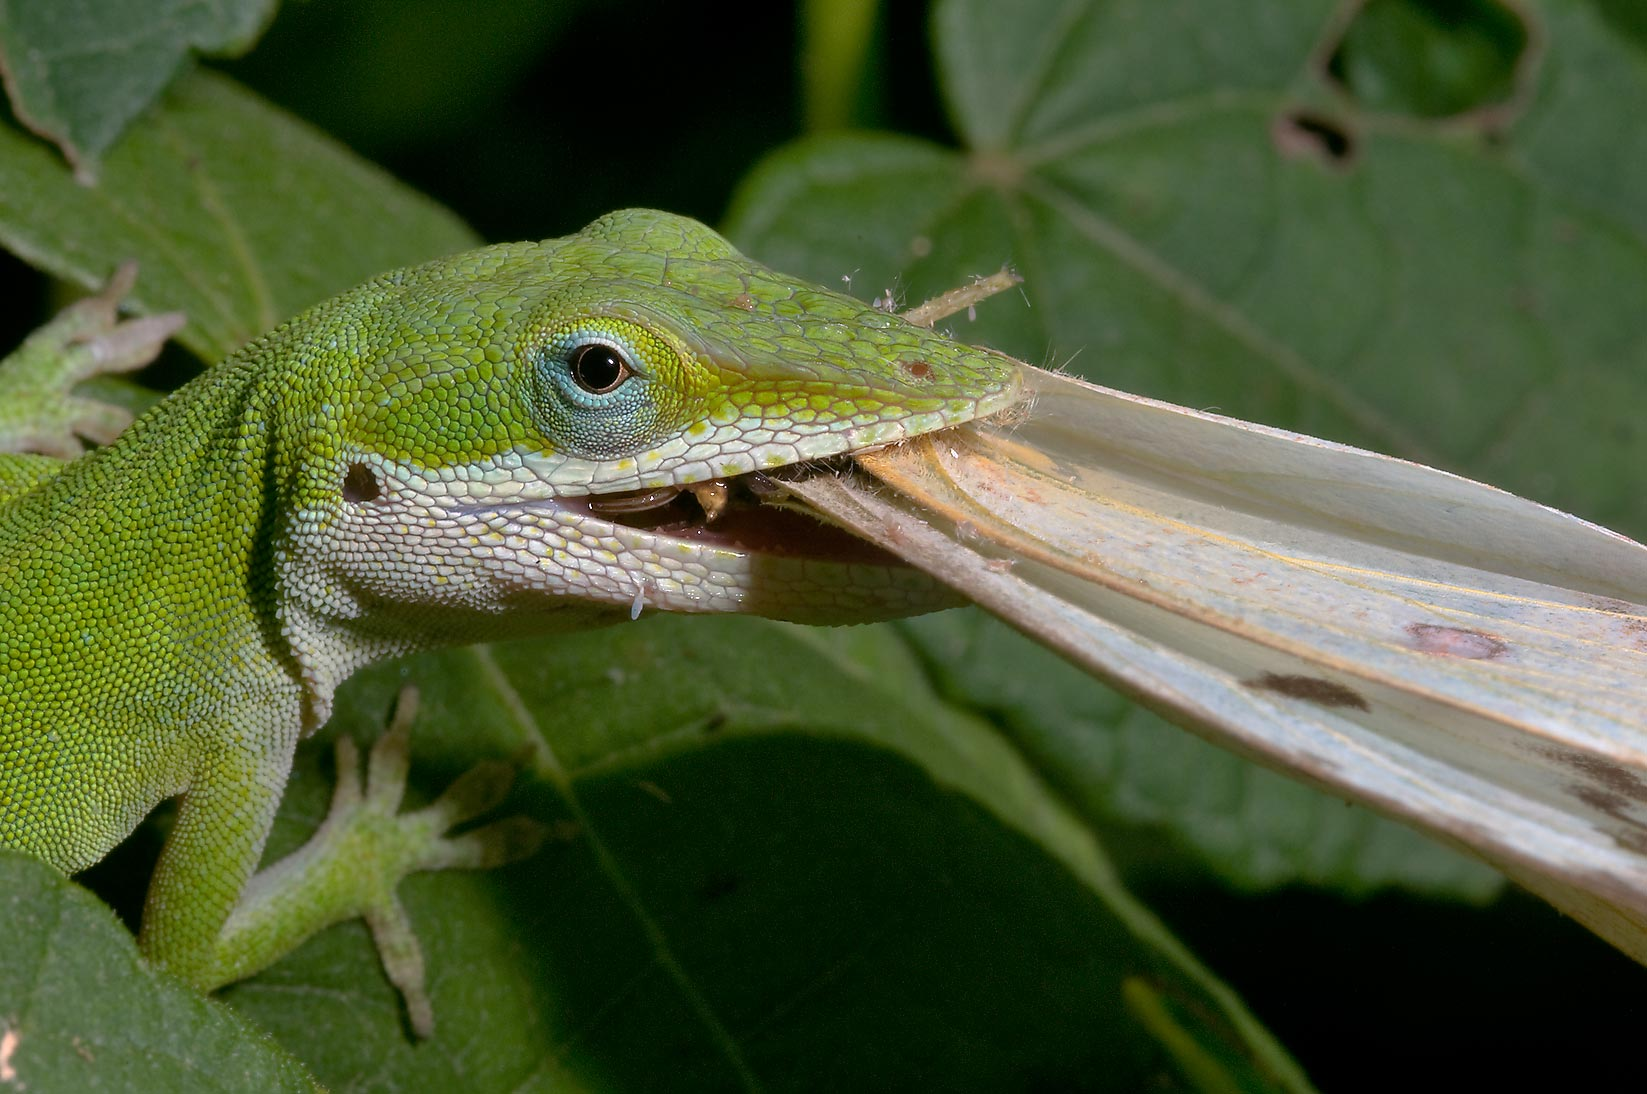 Green anole lizard with yellow butterfly in Antique Rose Emporium. Independence, Texas